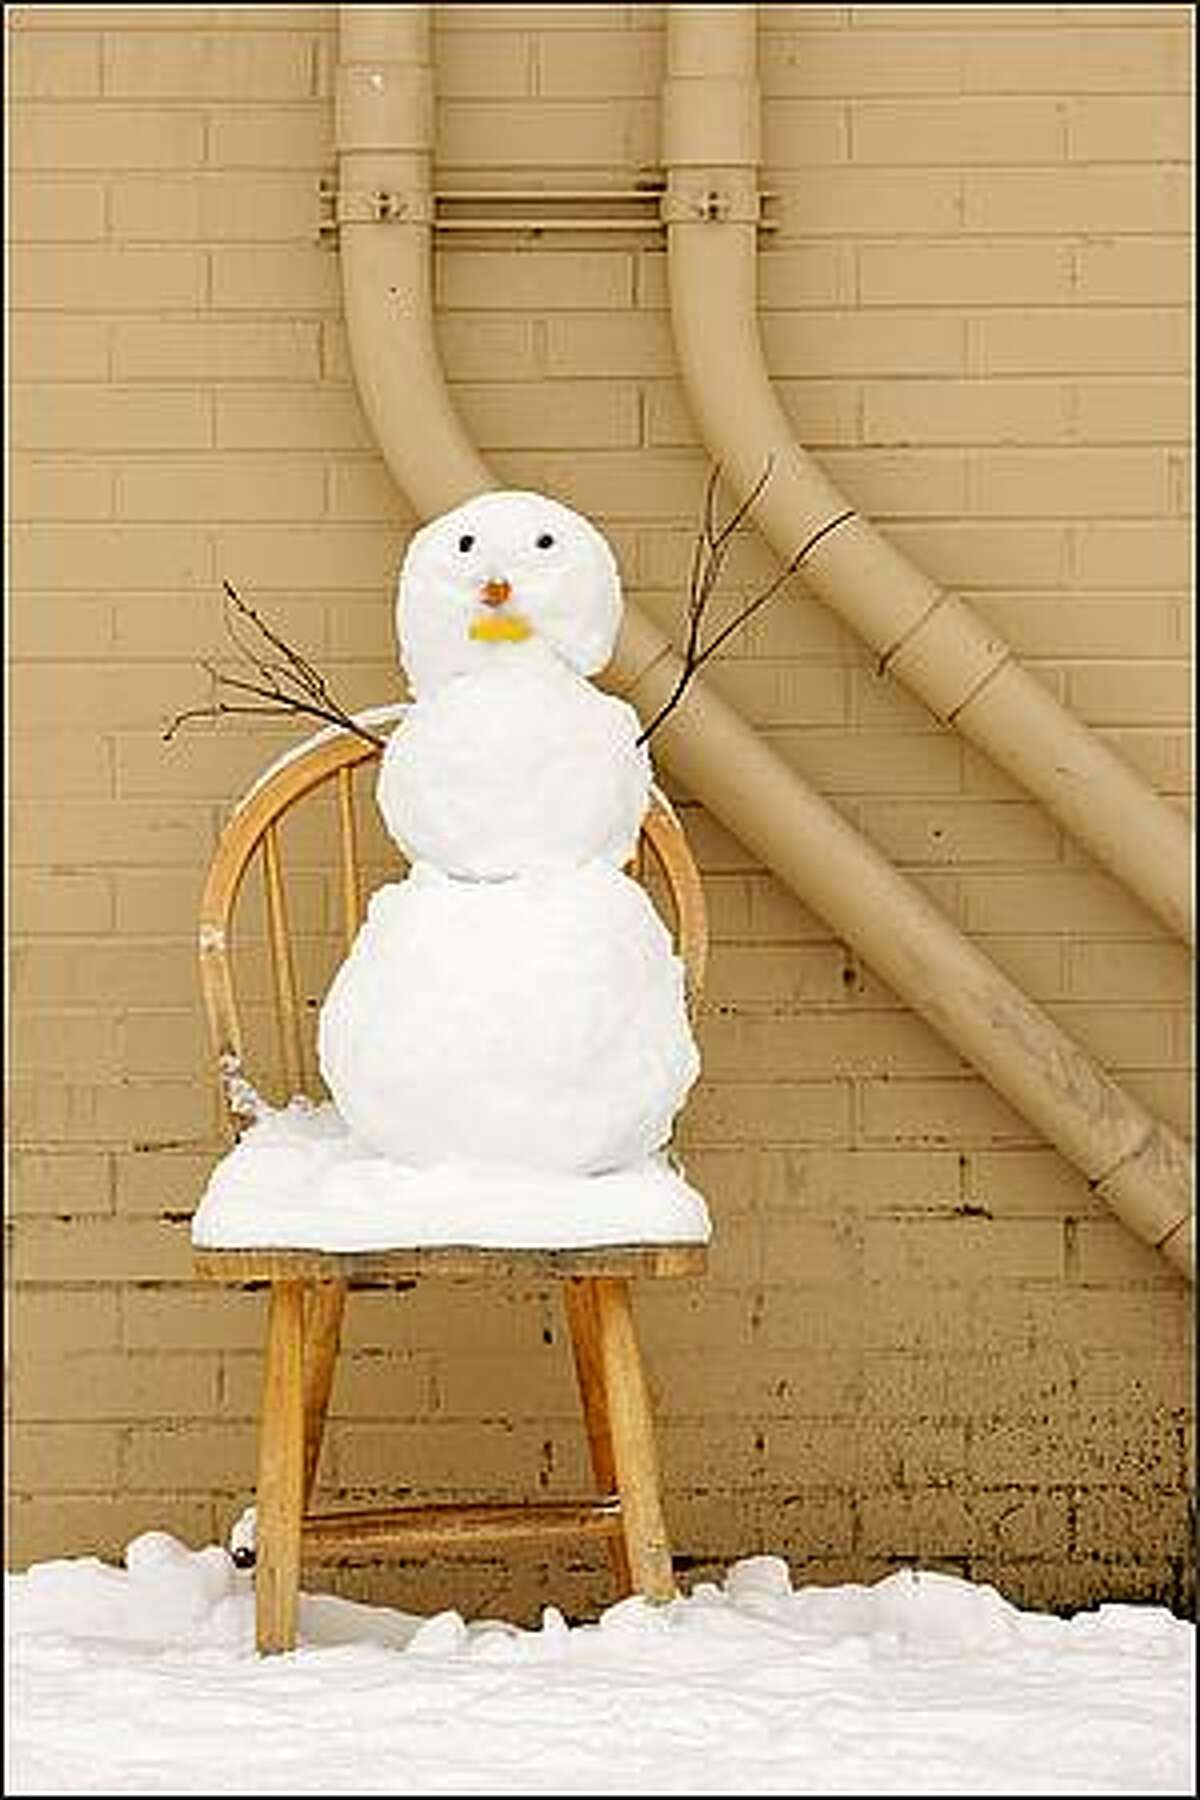 A small snowman takes a load off in the Wallingford neighborhood of Seattle. Dec. 22, 2008.